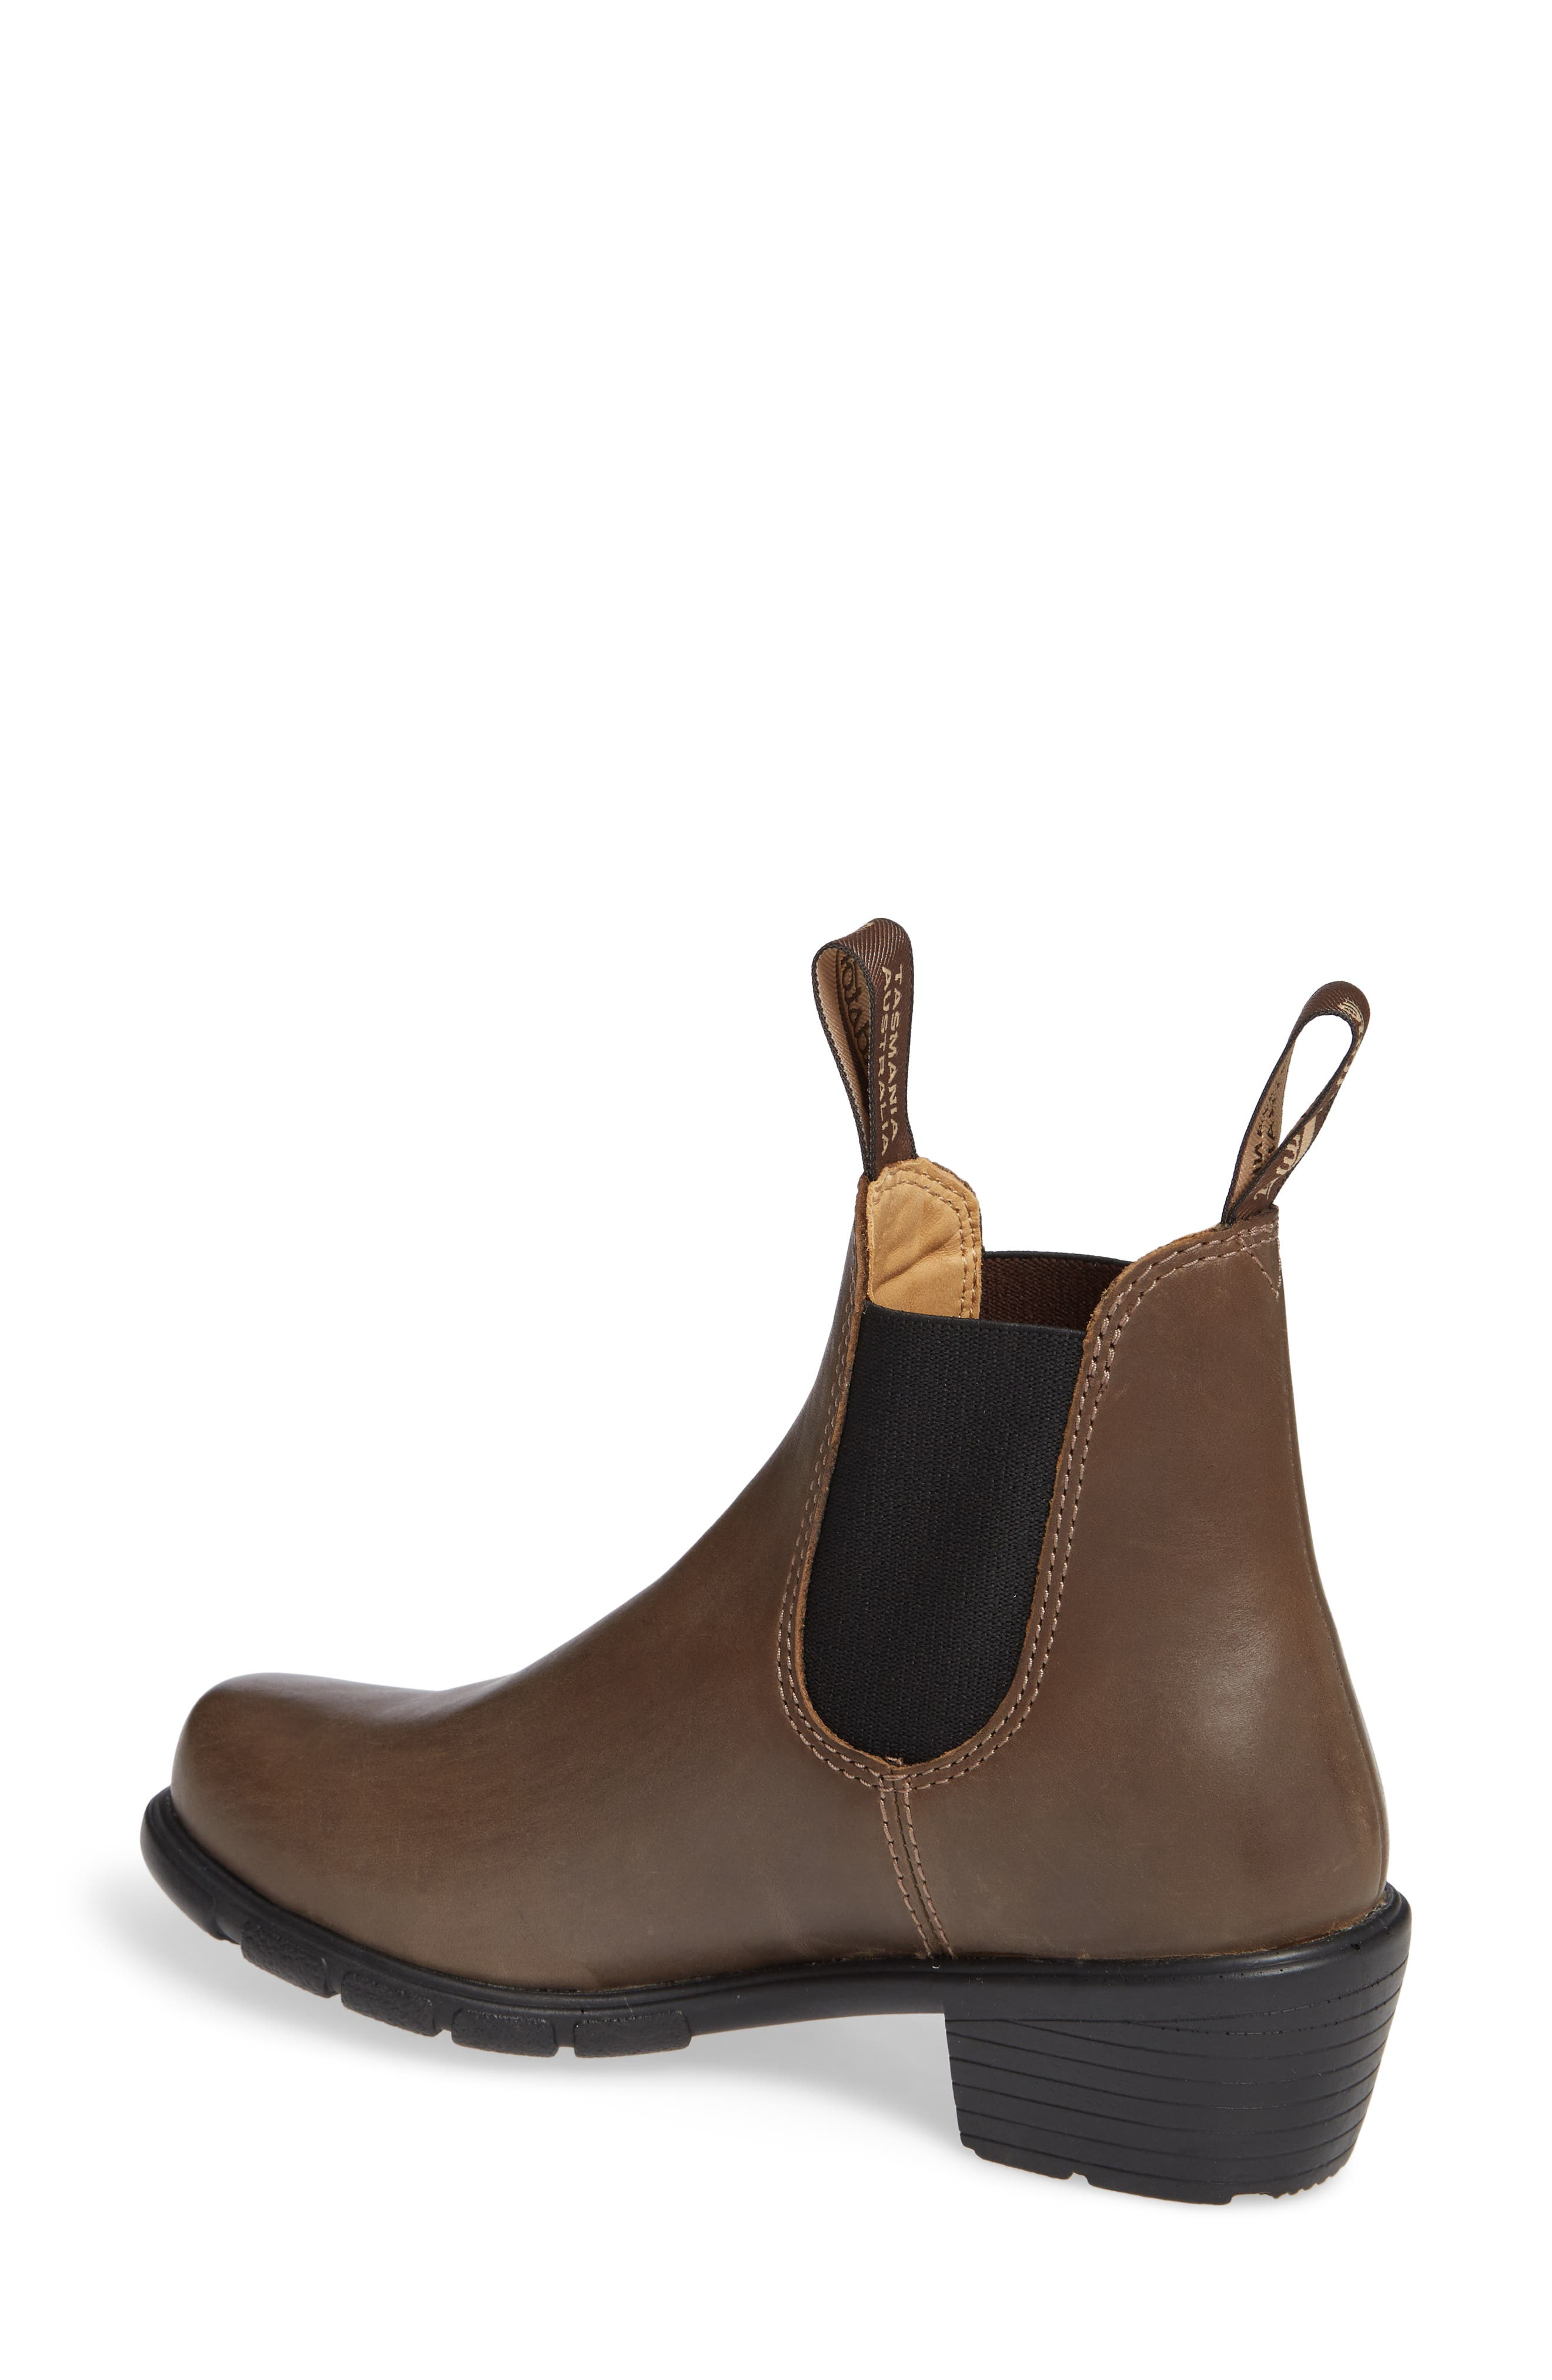 BLUNDSTONE FOOTWEAR, Blundstone 1671 Chelsea Boot, Alternate thumbnail 2, color, ANTIQUE TAUPE LEATHER